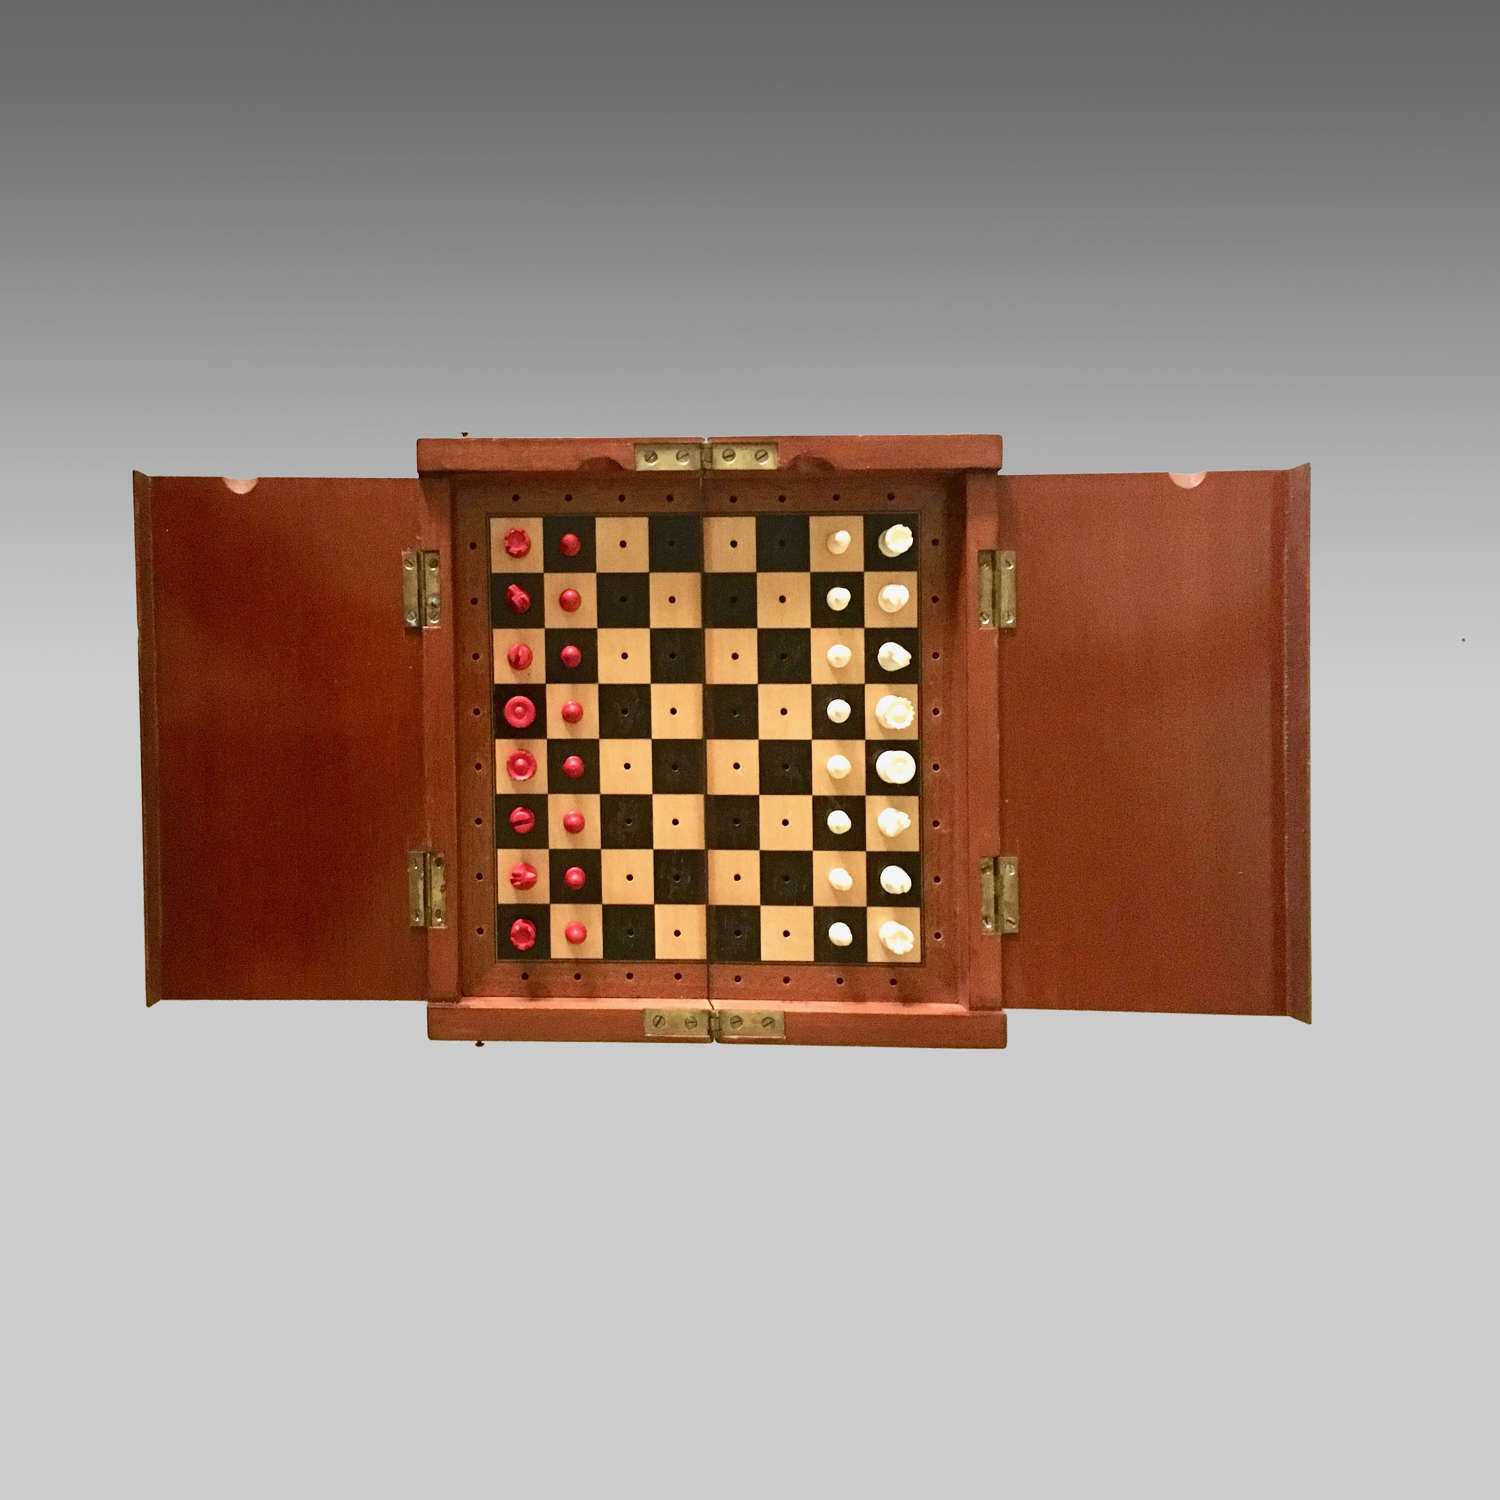 19th century 'The Whittington' mahogany cased travelling chess set